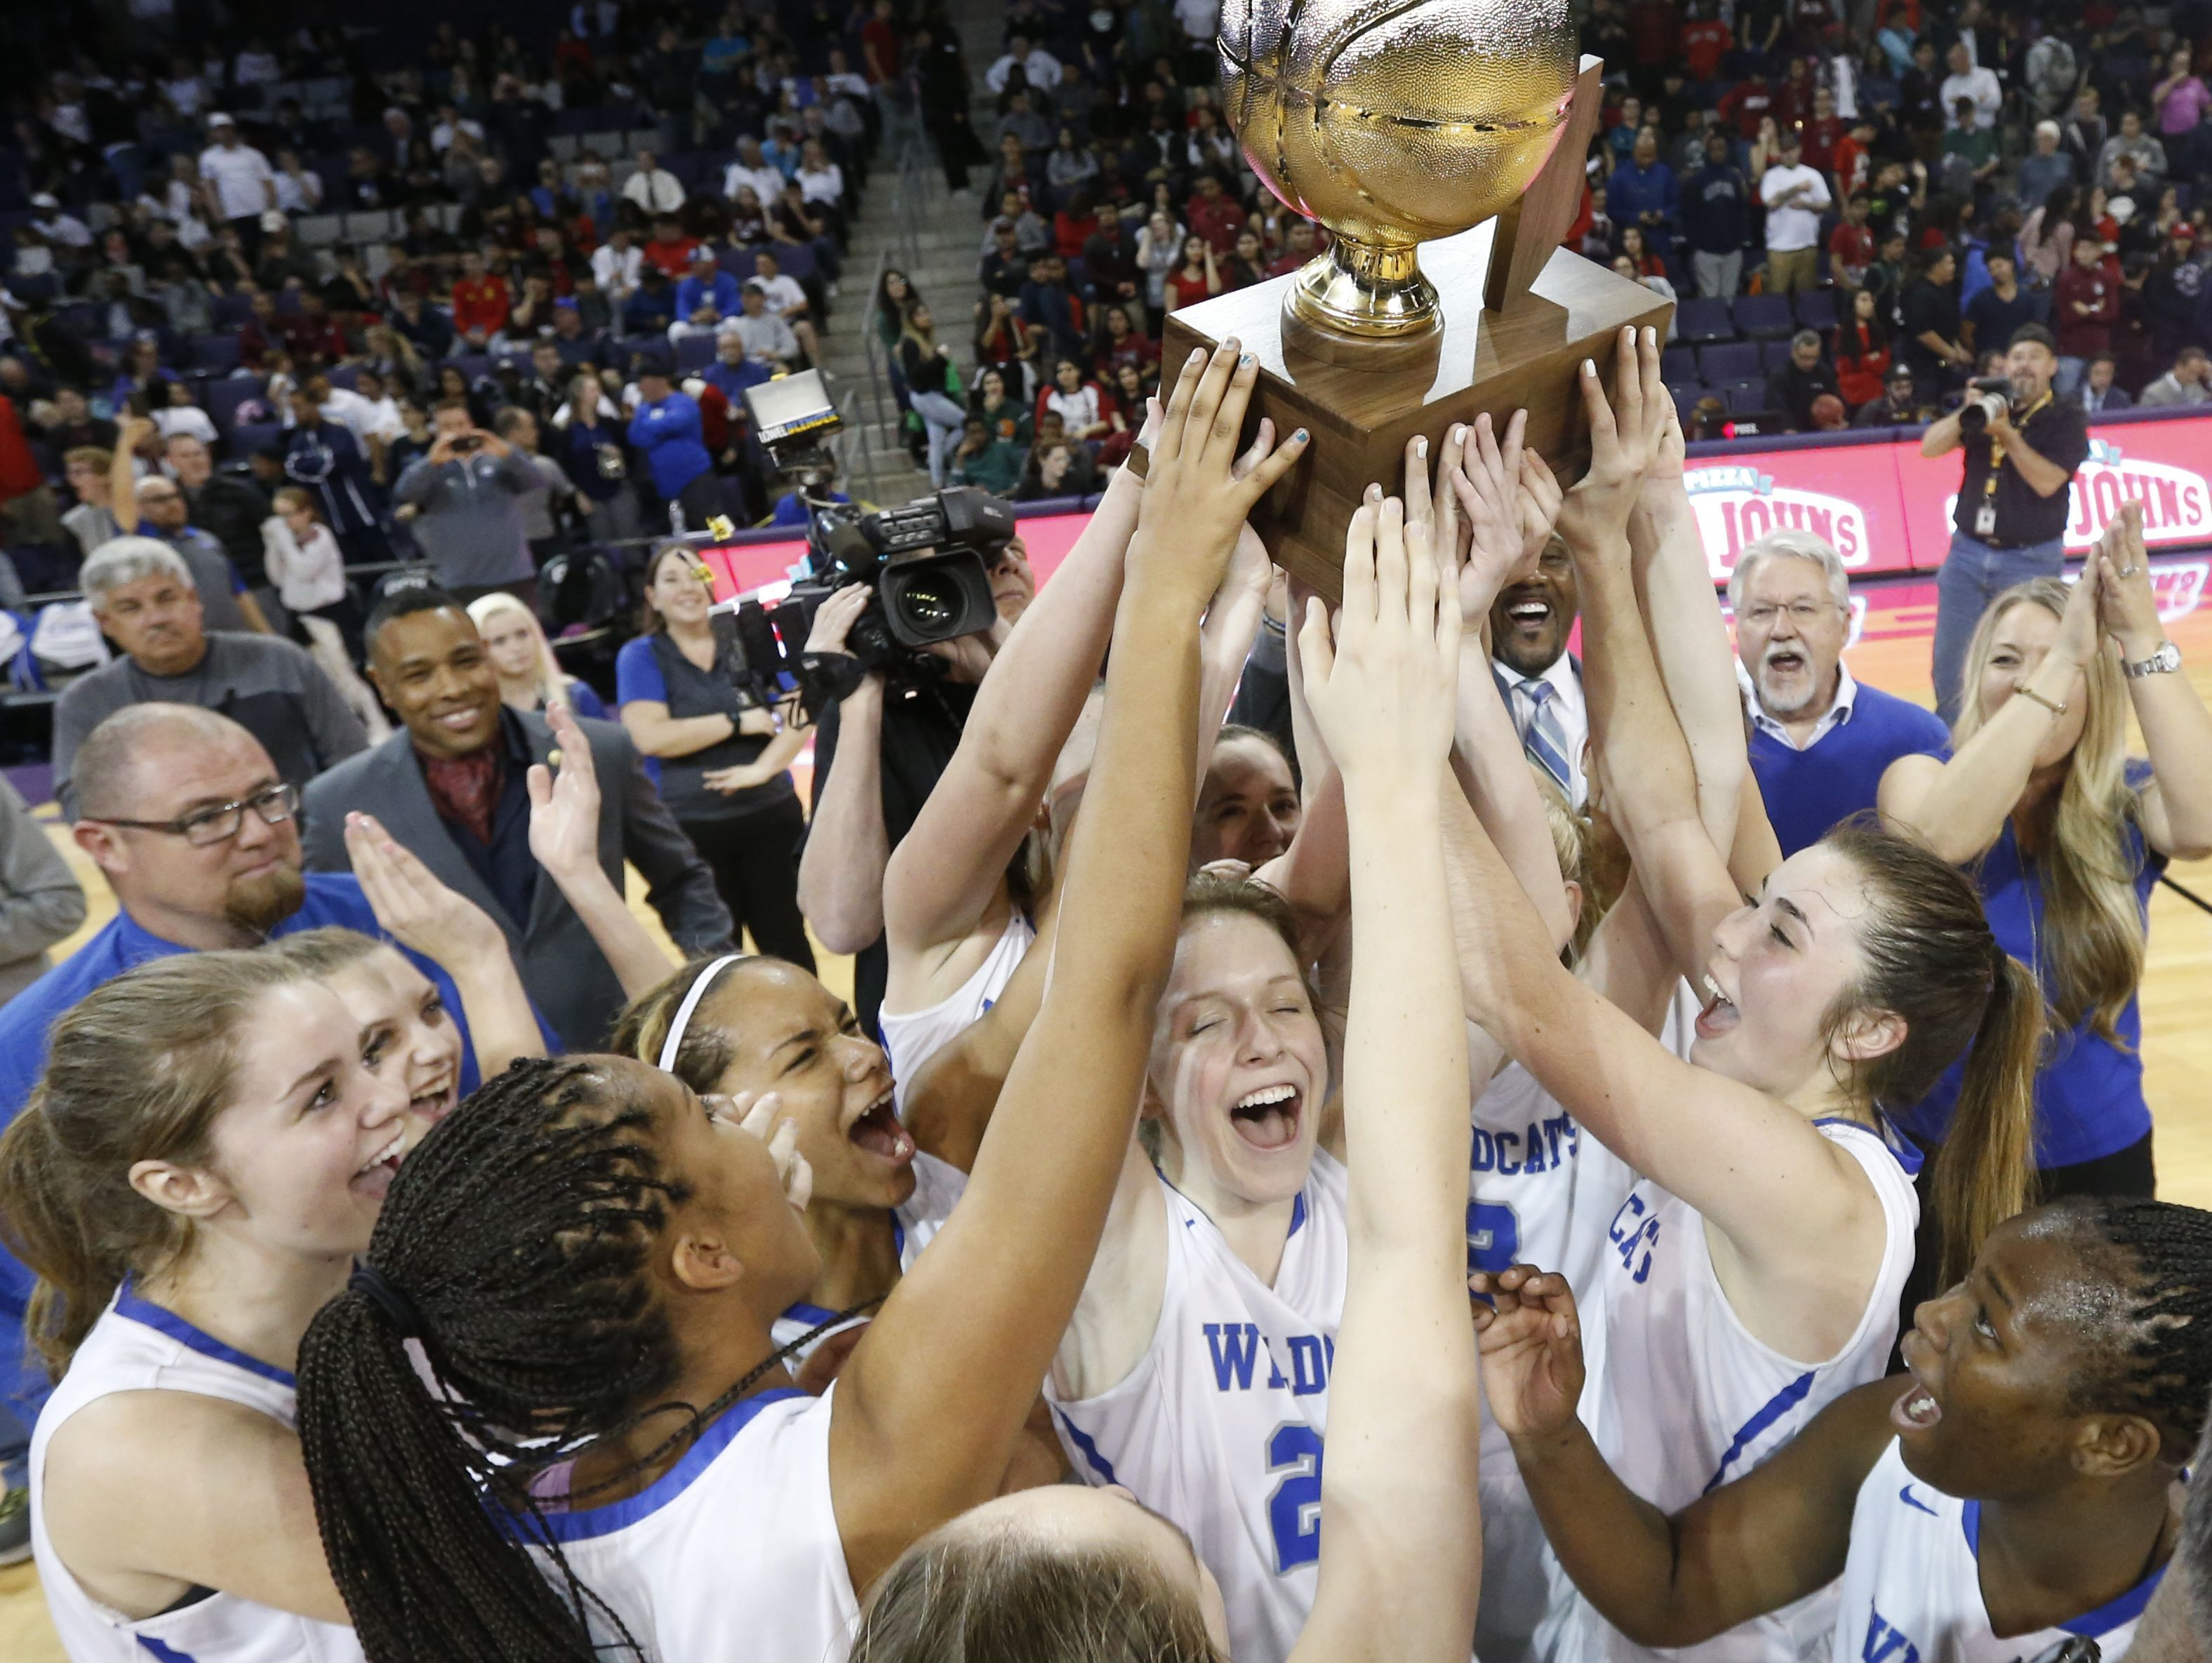 Mesquite lifts the championship trophy after beating Sierra Linda during the State Championship game at GCU Arena on February 27, 2017 in Phoenix, Ariz.